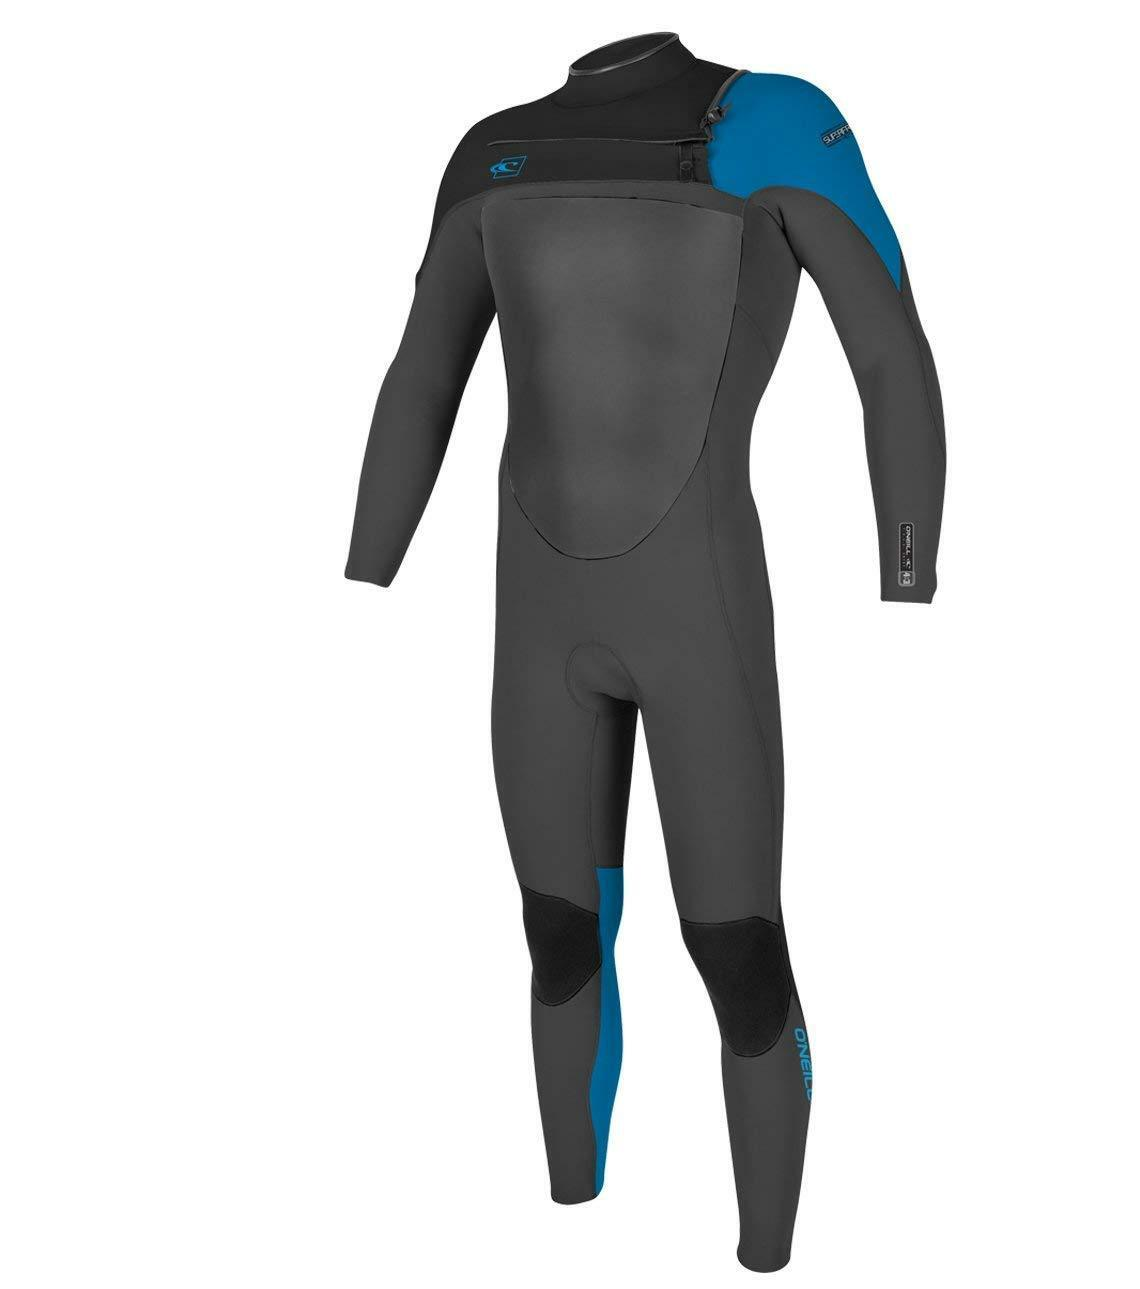 O'NEILL Youth 4 3 SUPERFREAK FZ Wetsuit - Graph Blk Brtbluee - Size 10 - NWT